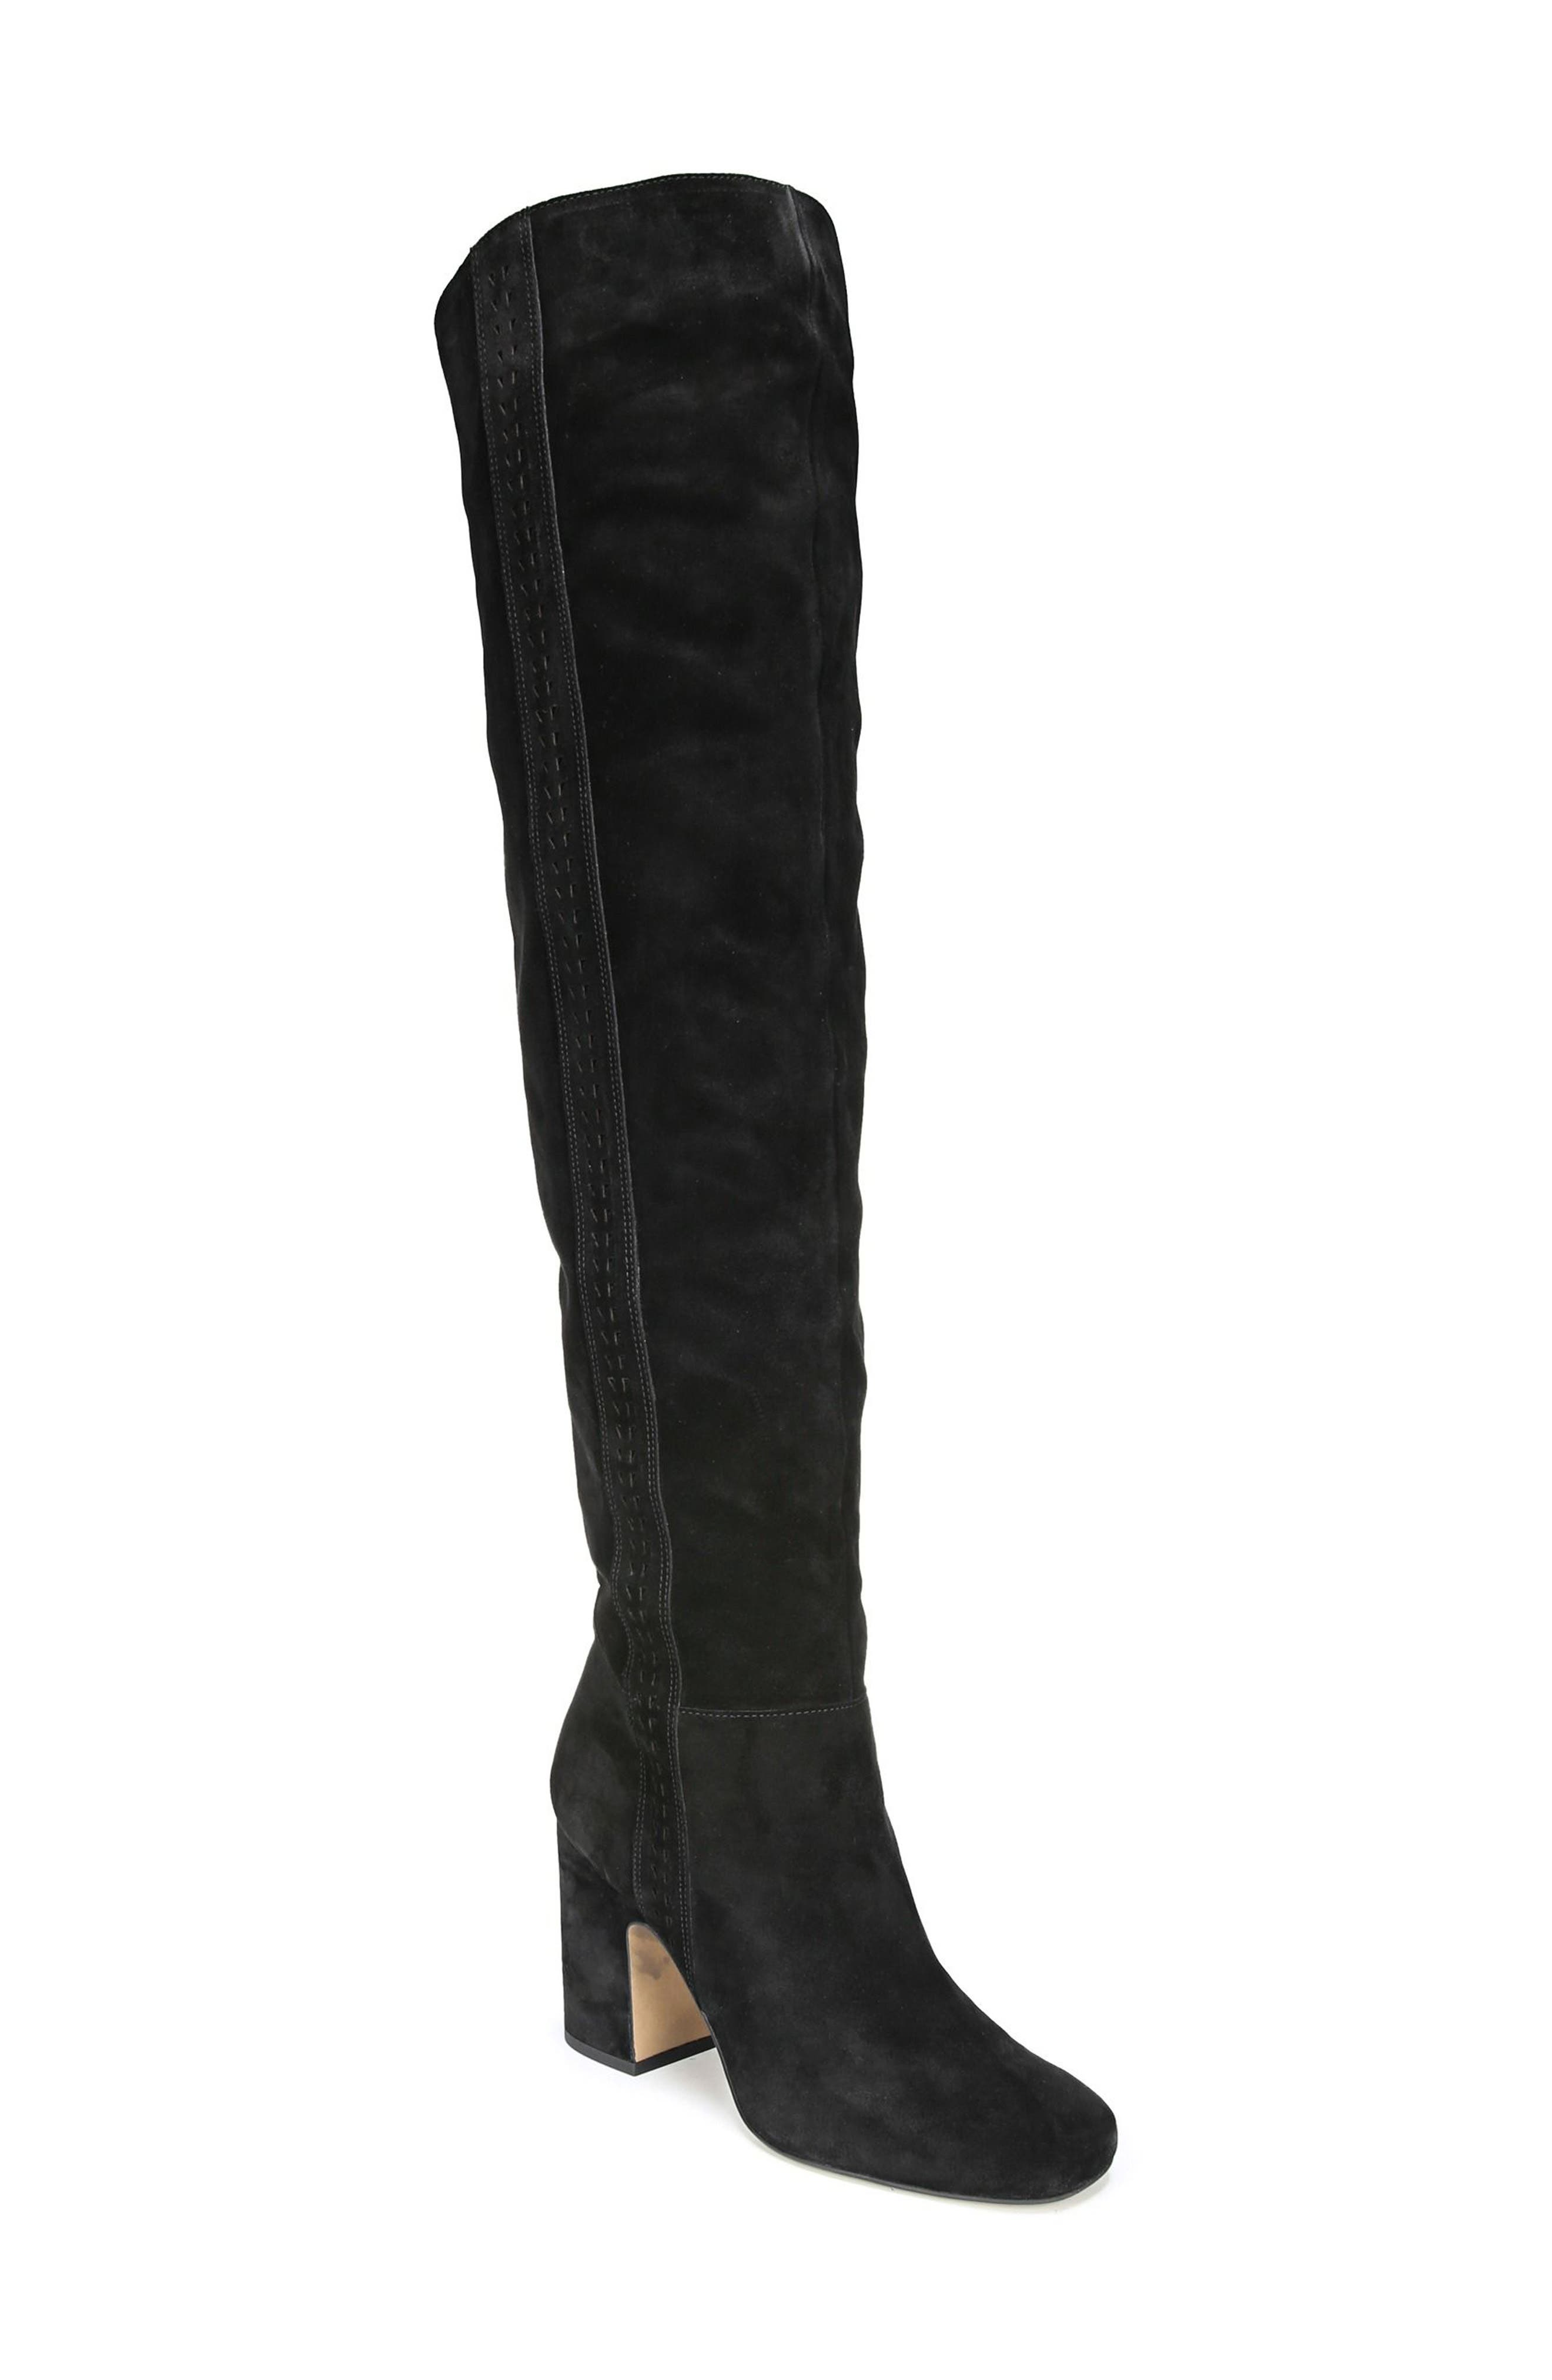 Laurel Over the Knee Boot,                             Main thumbnail 1, color,                             Black Suede